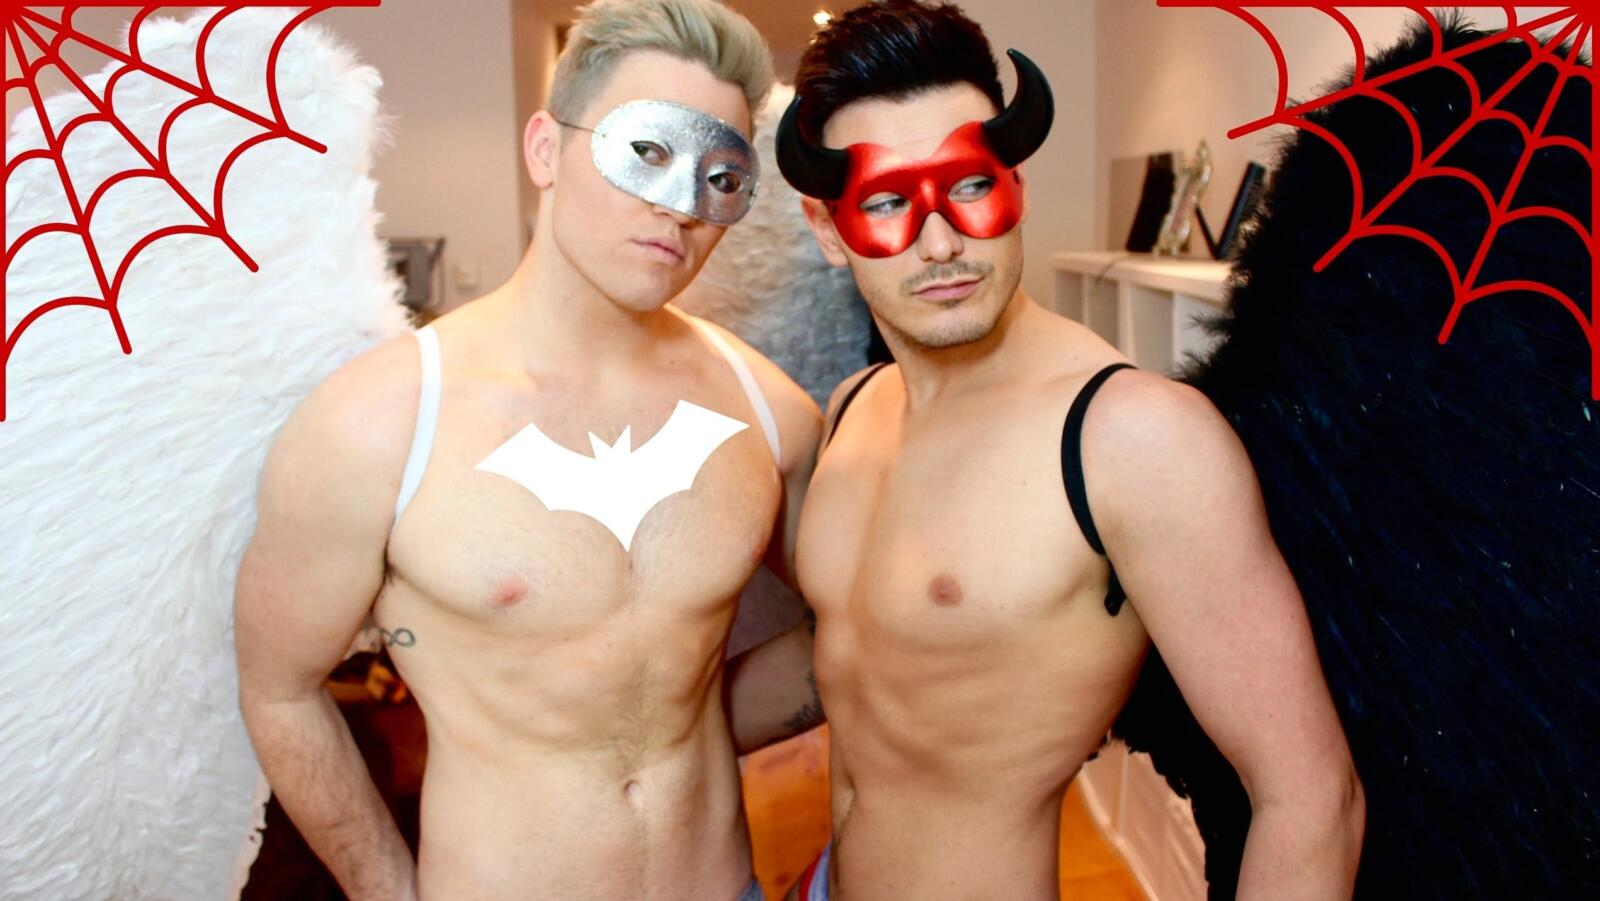 angel and devil gay couple halloween costumes